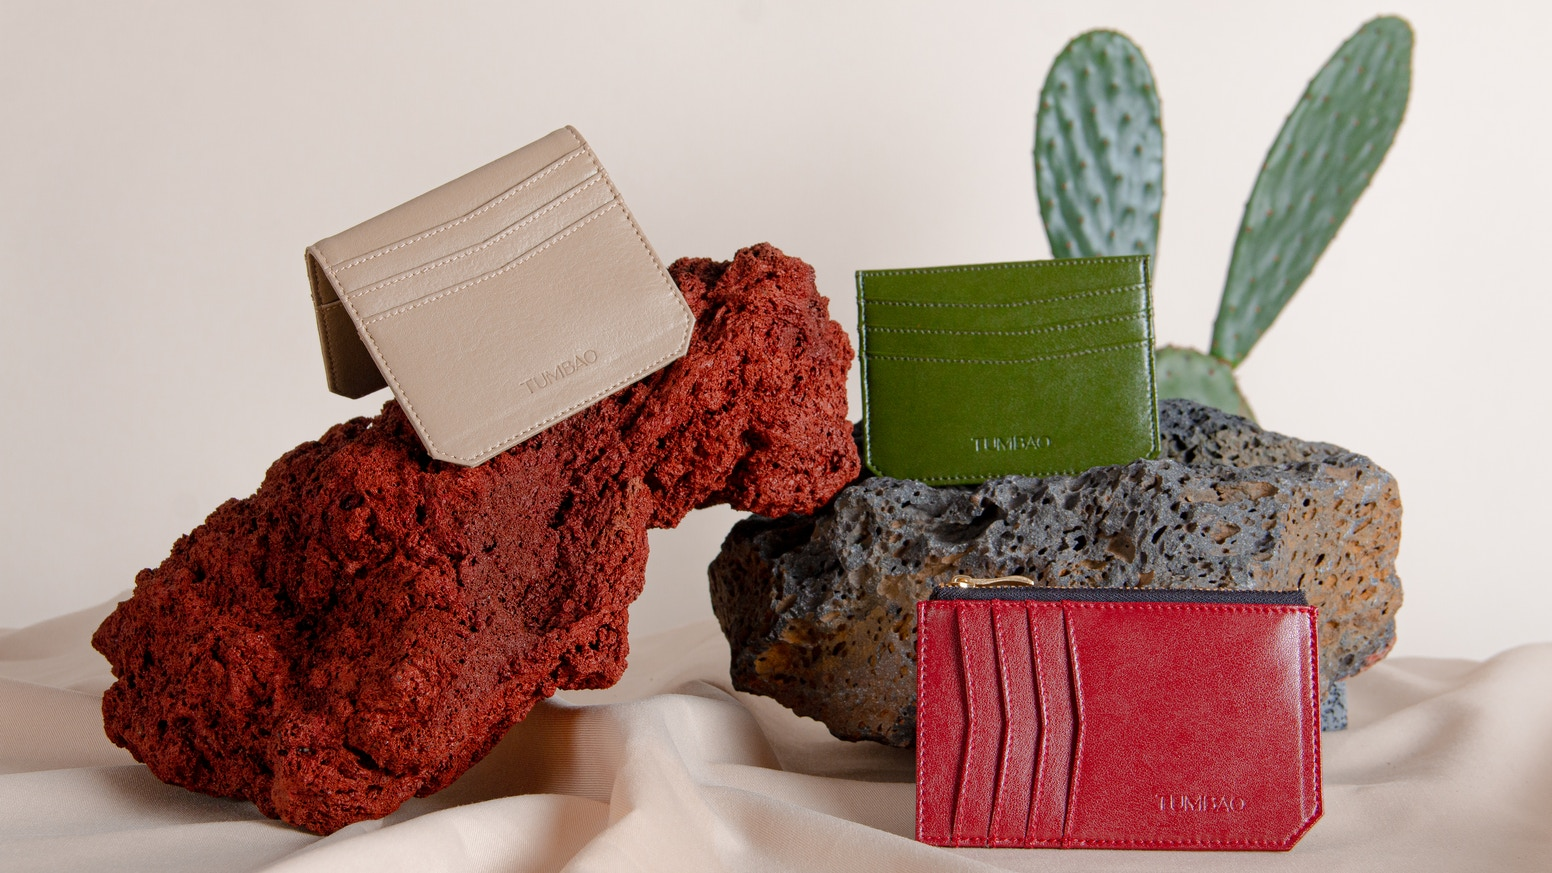 Tumbao brings you environmentally friendly and sustainable wallets made of cactus bio-leather at an affordable price.